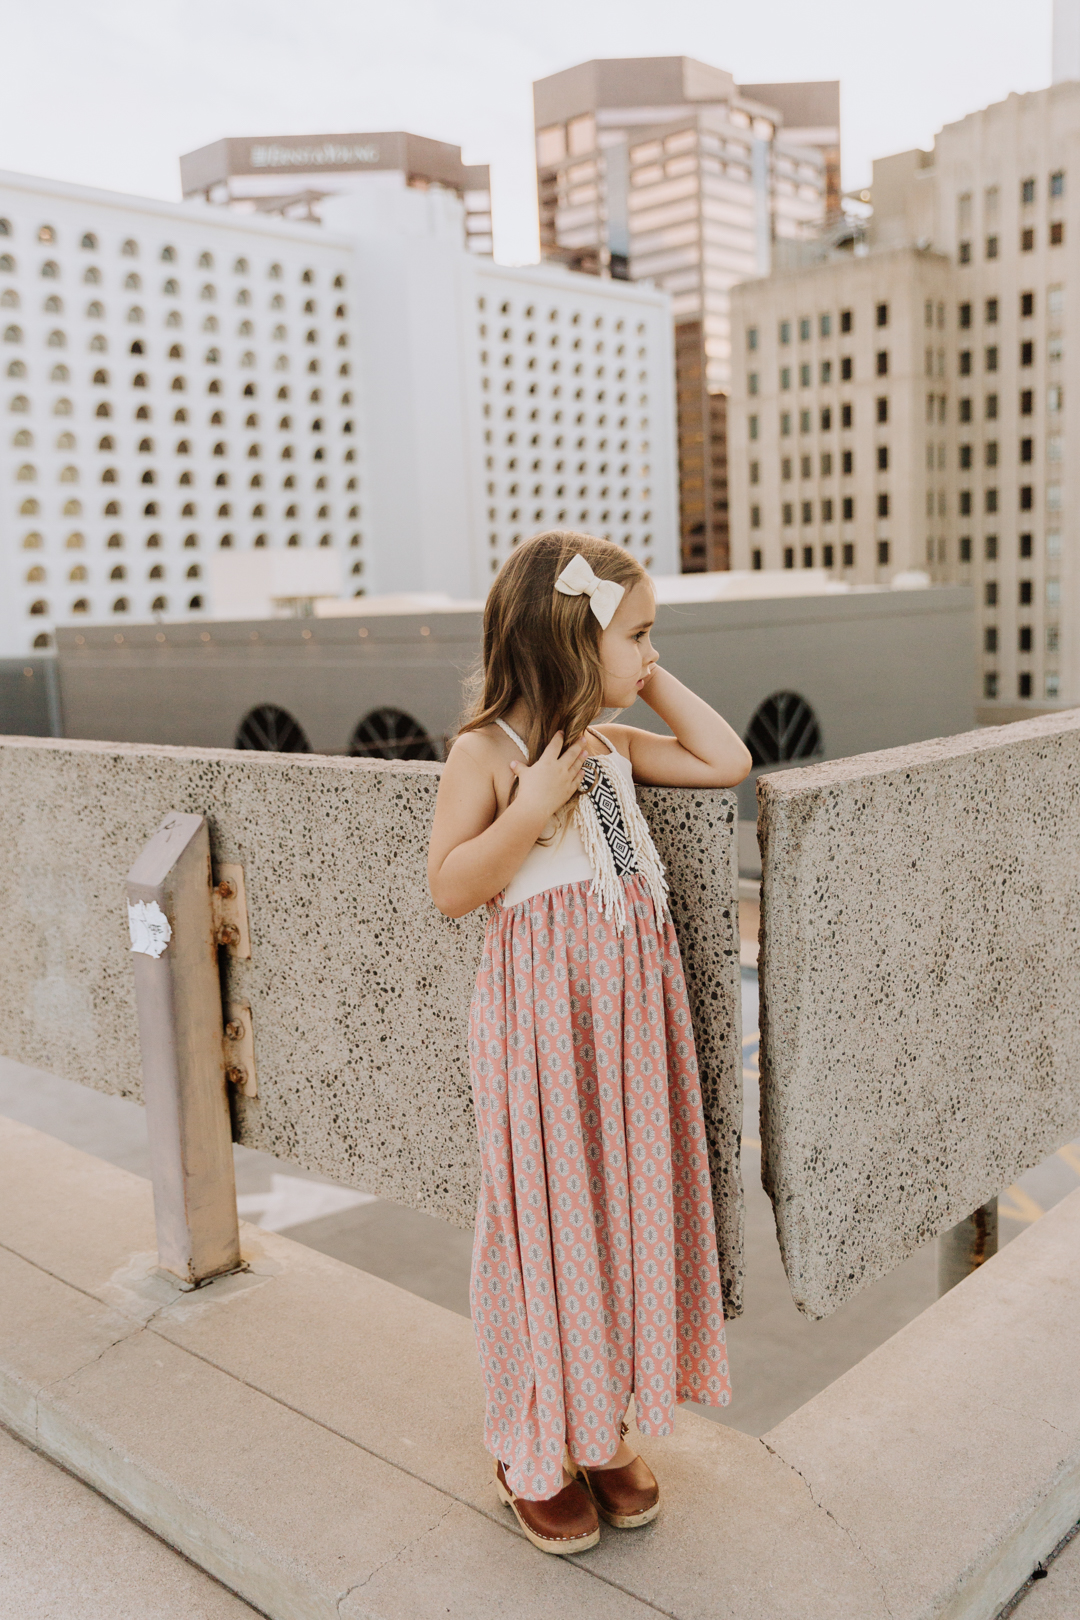 our sweet girl on a rooftop for family photos | thelovedesignedlife.com #ministyle #familyphotos